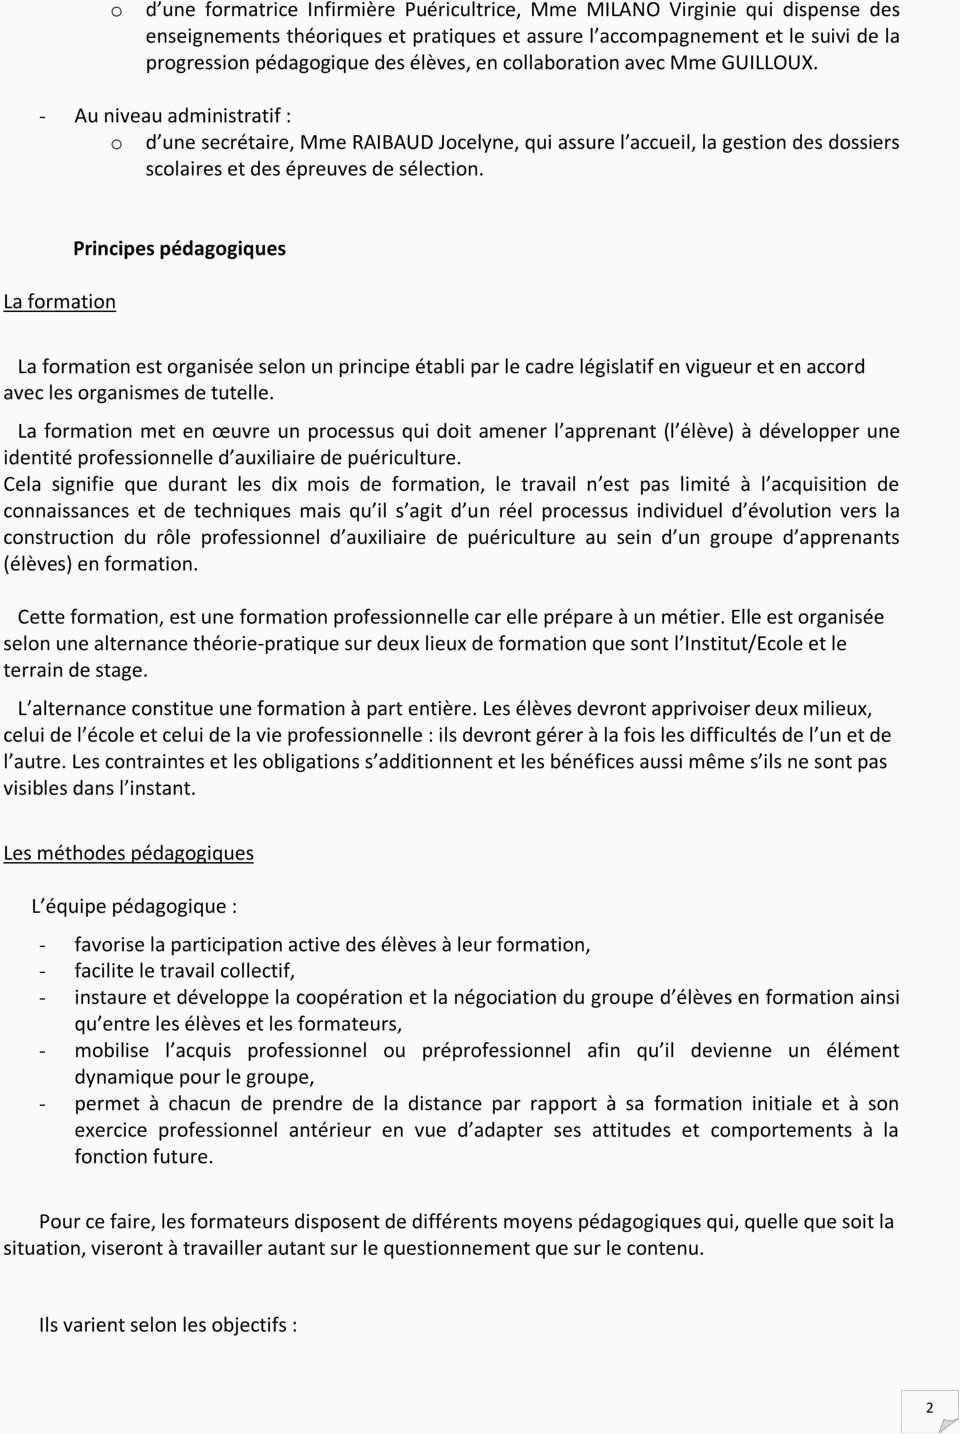 Modele Lettre De Motivation Auxiliaire De Vie Lettre De Motivation formation Deaes Exemple Lettre De Motivation